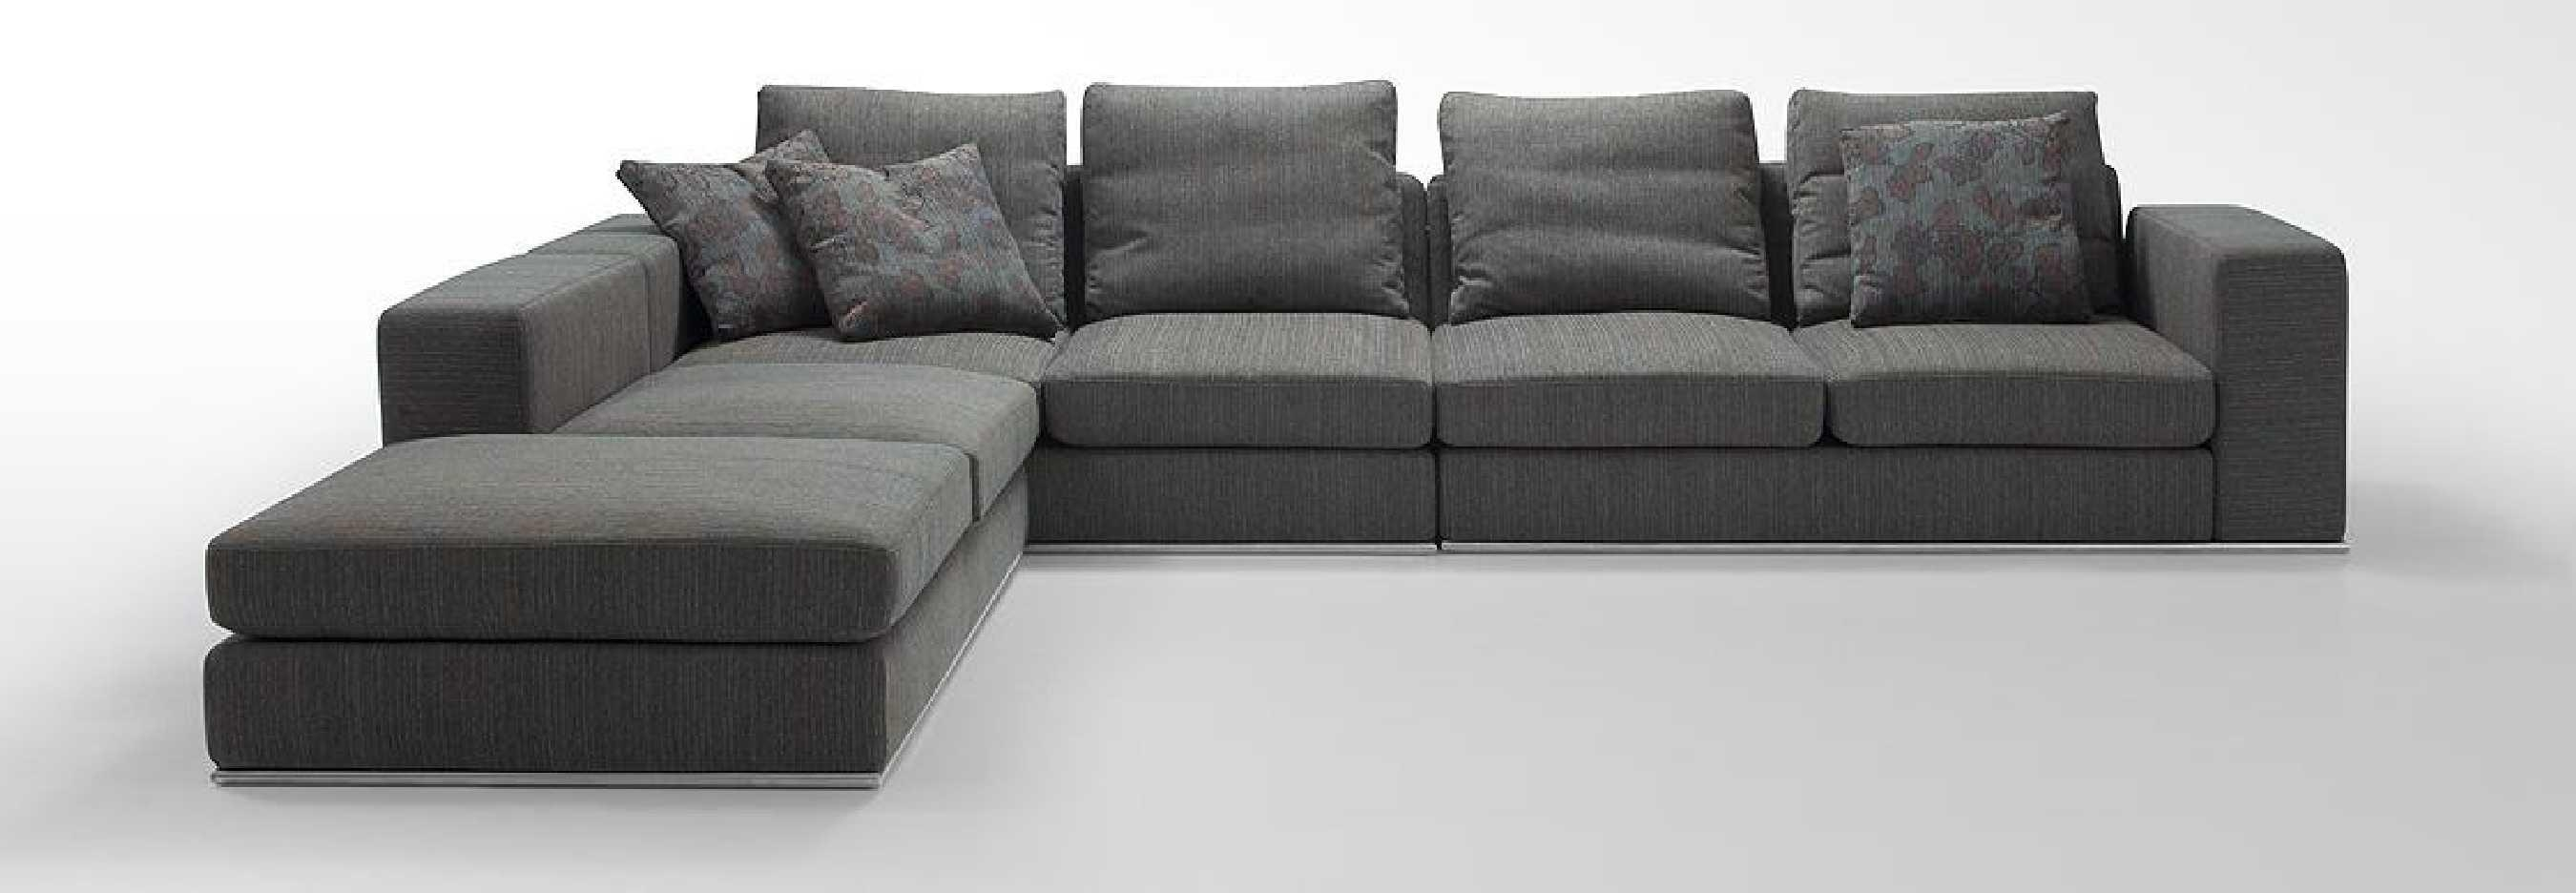 Furniture: Amusing Furniture Decorated L Shaped Sleeper Sofa For Regarding Leather L Shaped Sectional Sofas (Image 5 of 20)